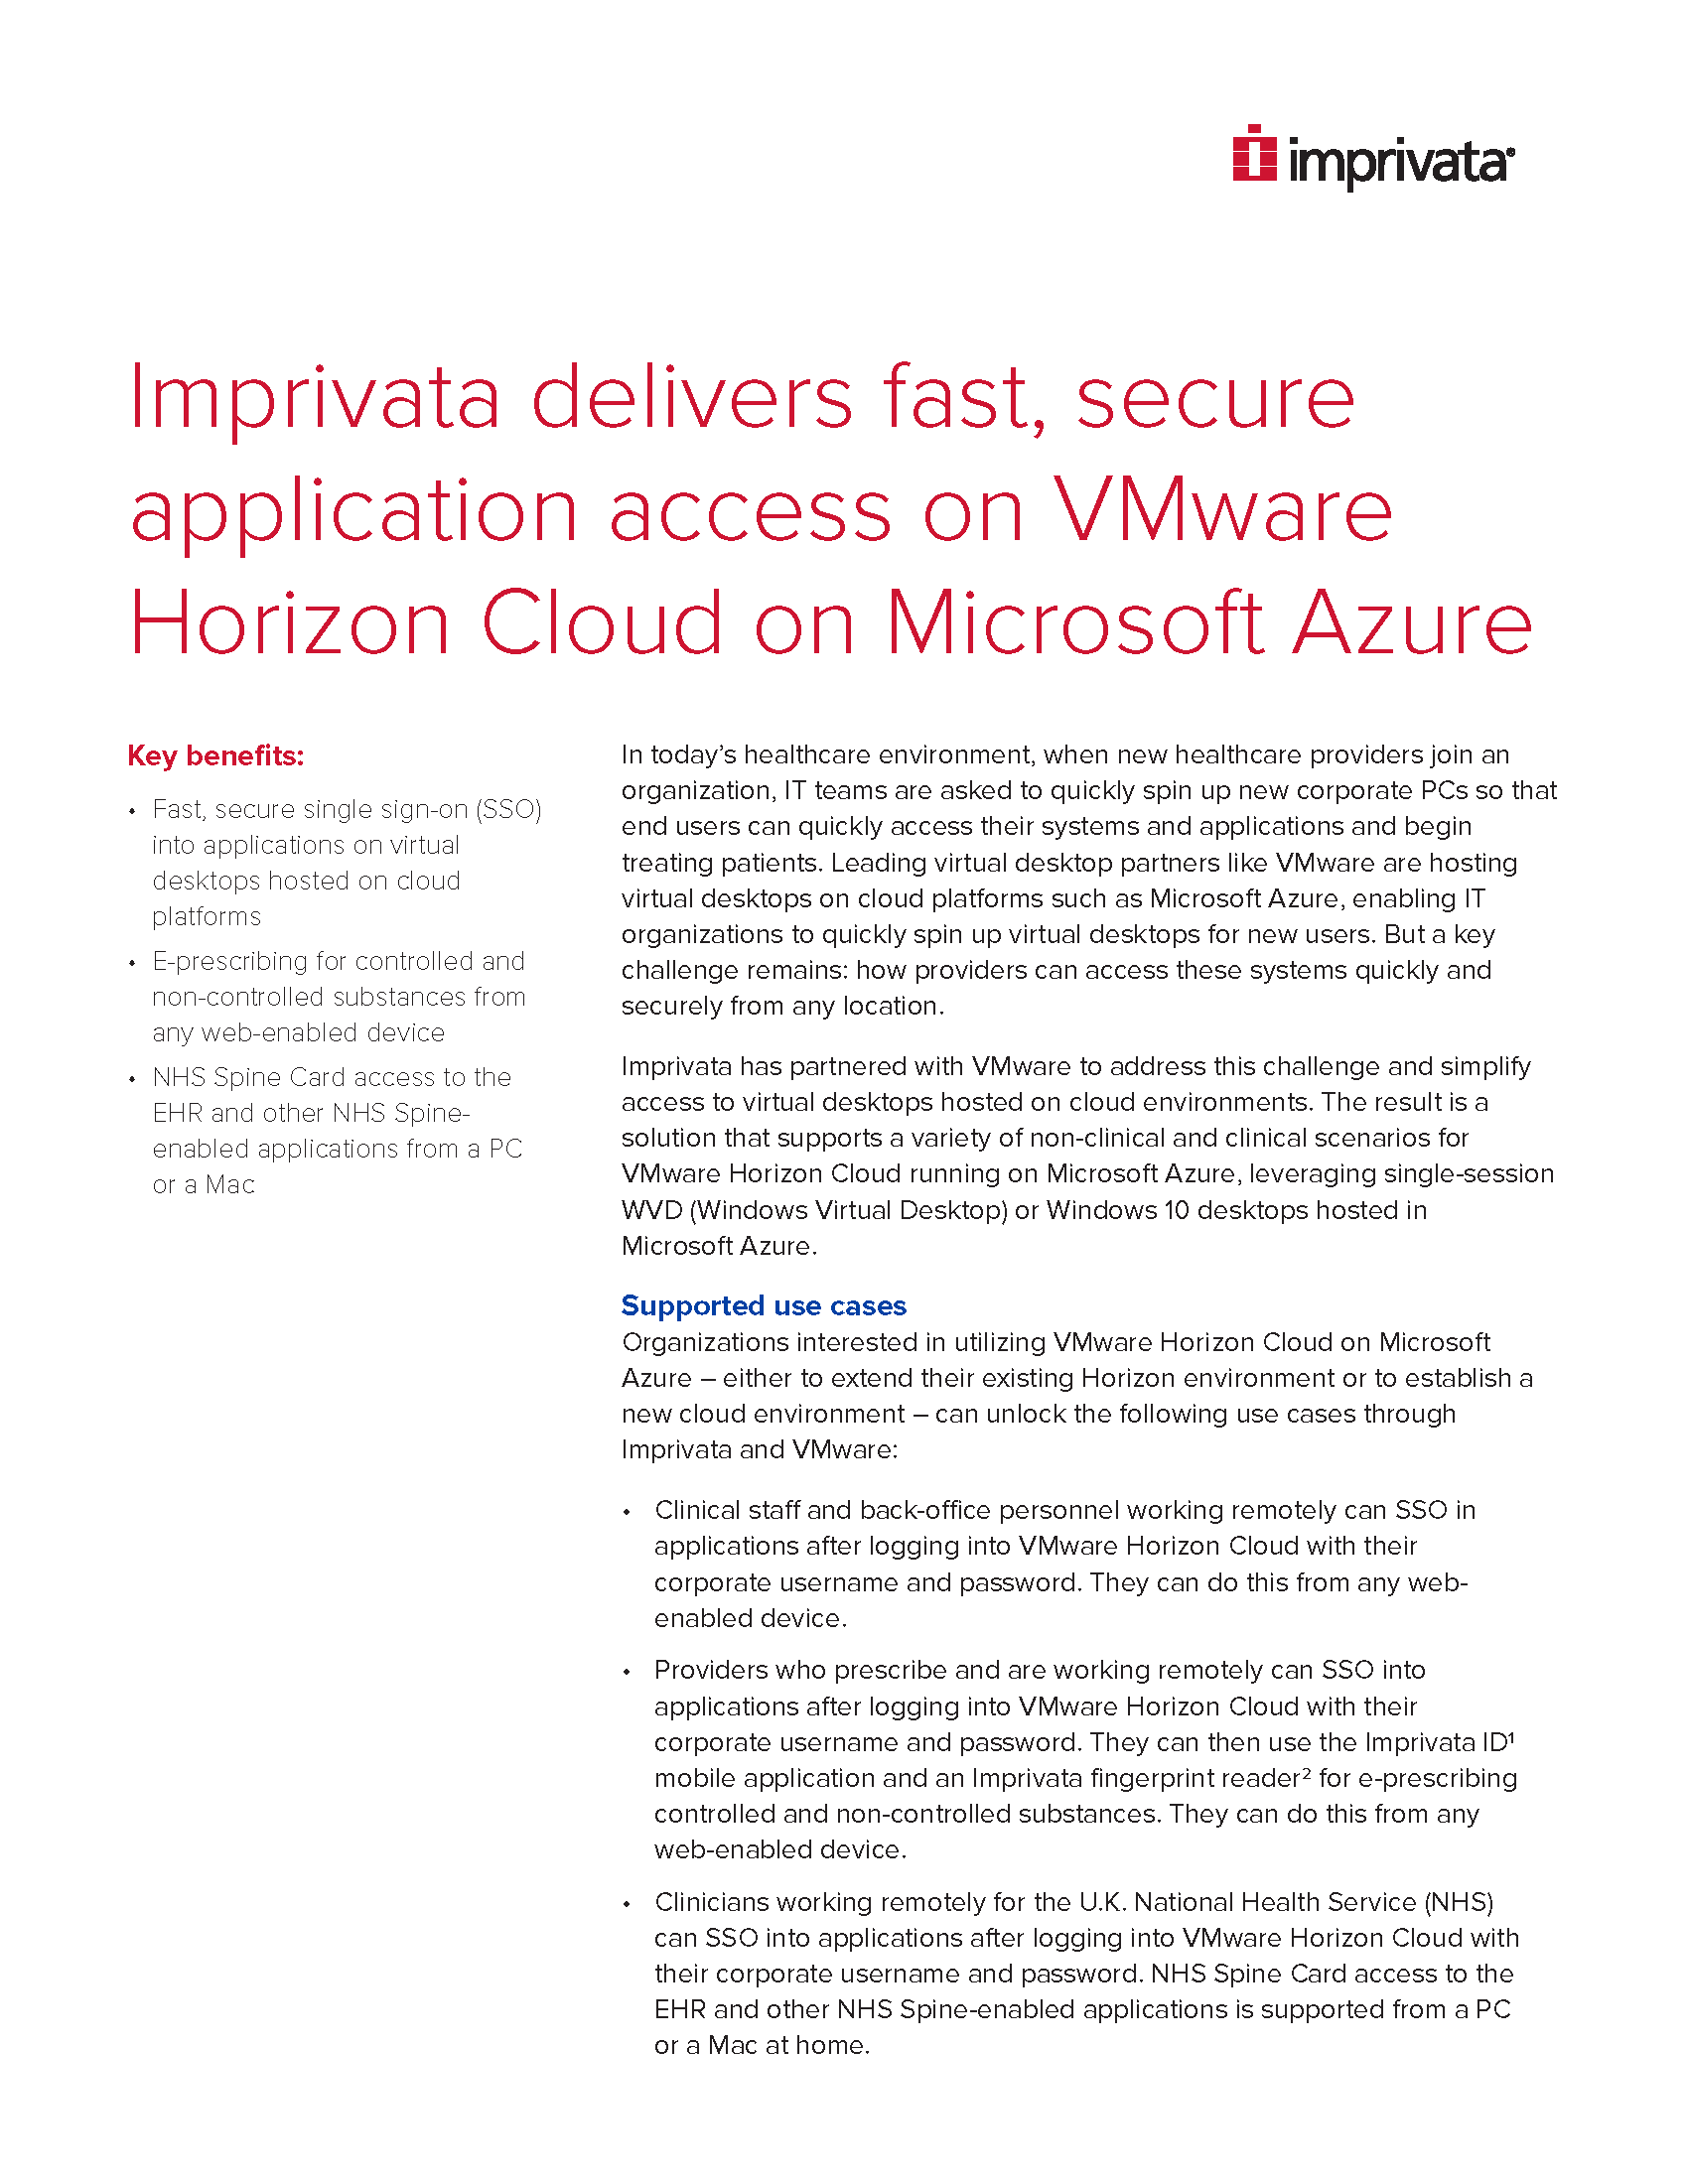 Imprivata delivers fast, secure application access on VMware Horizon Cloud on Microsoft Azure